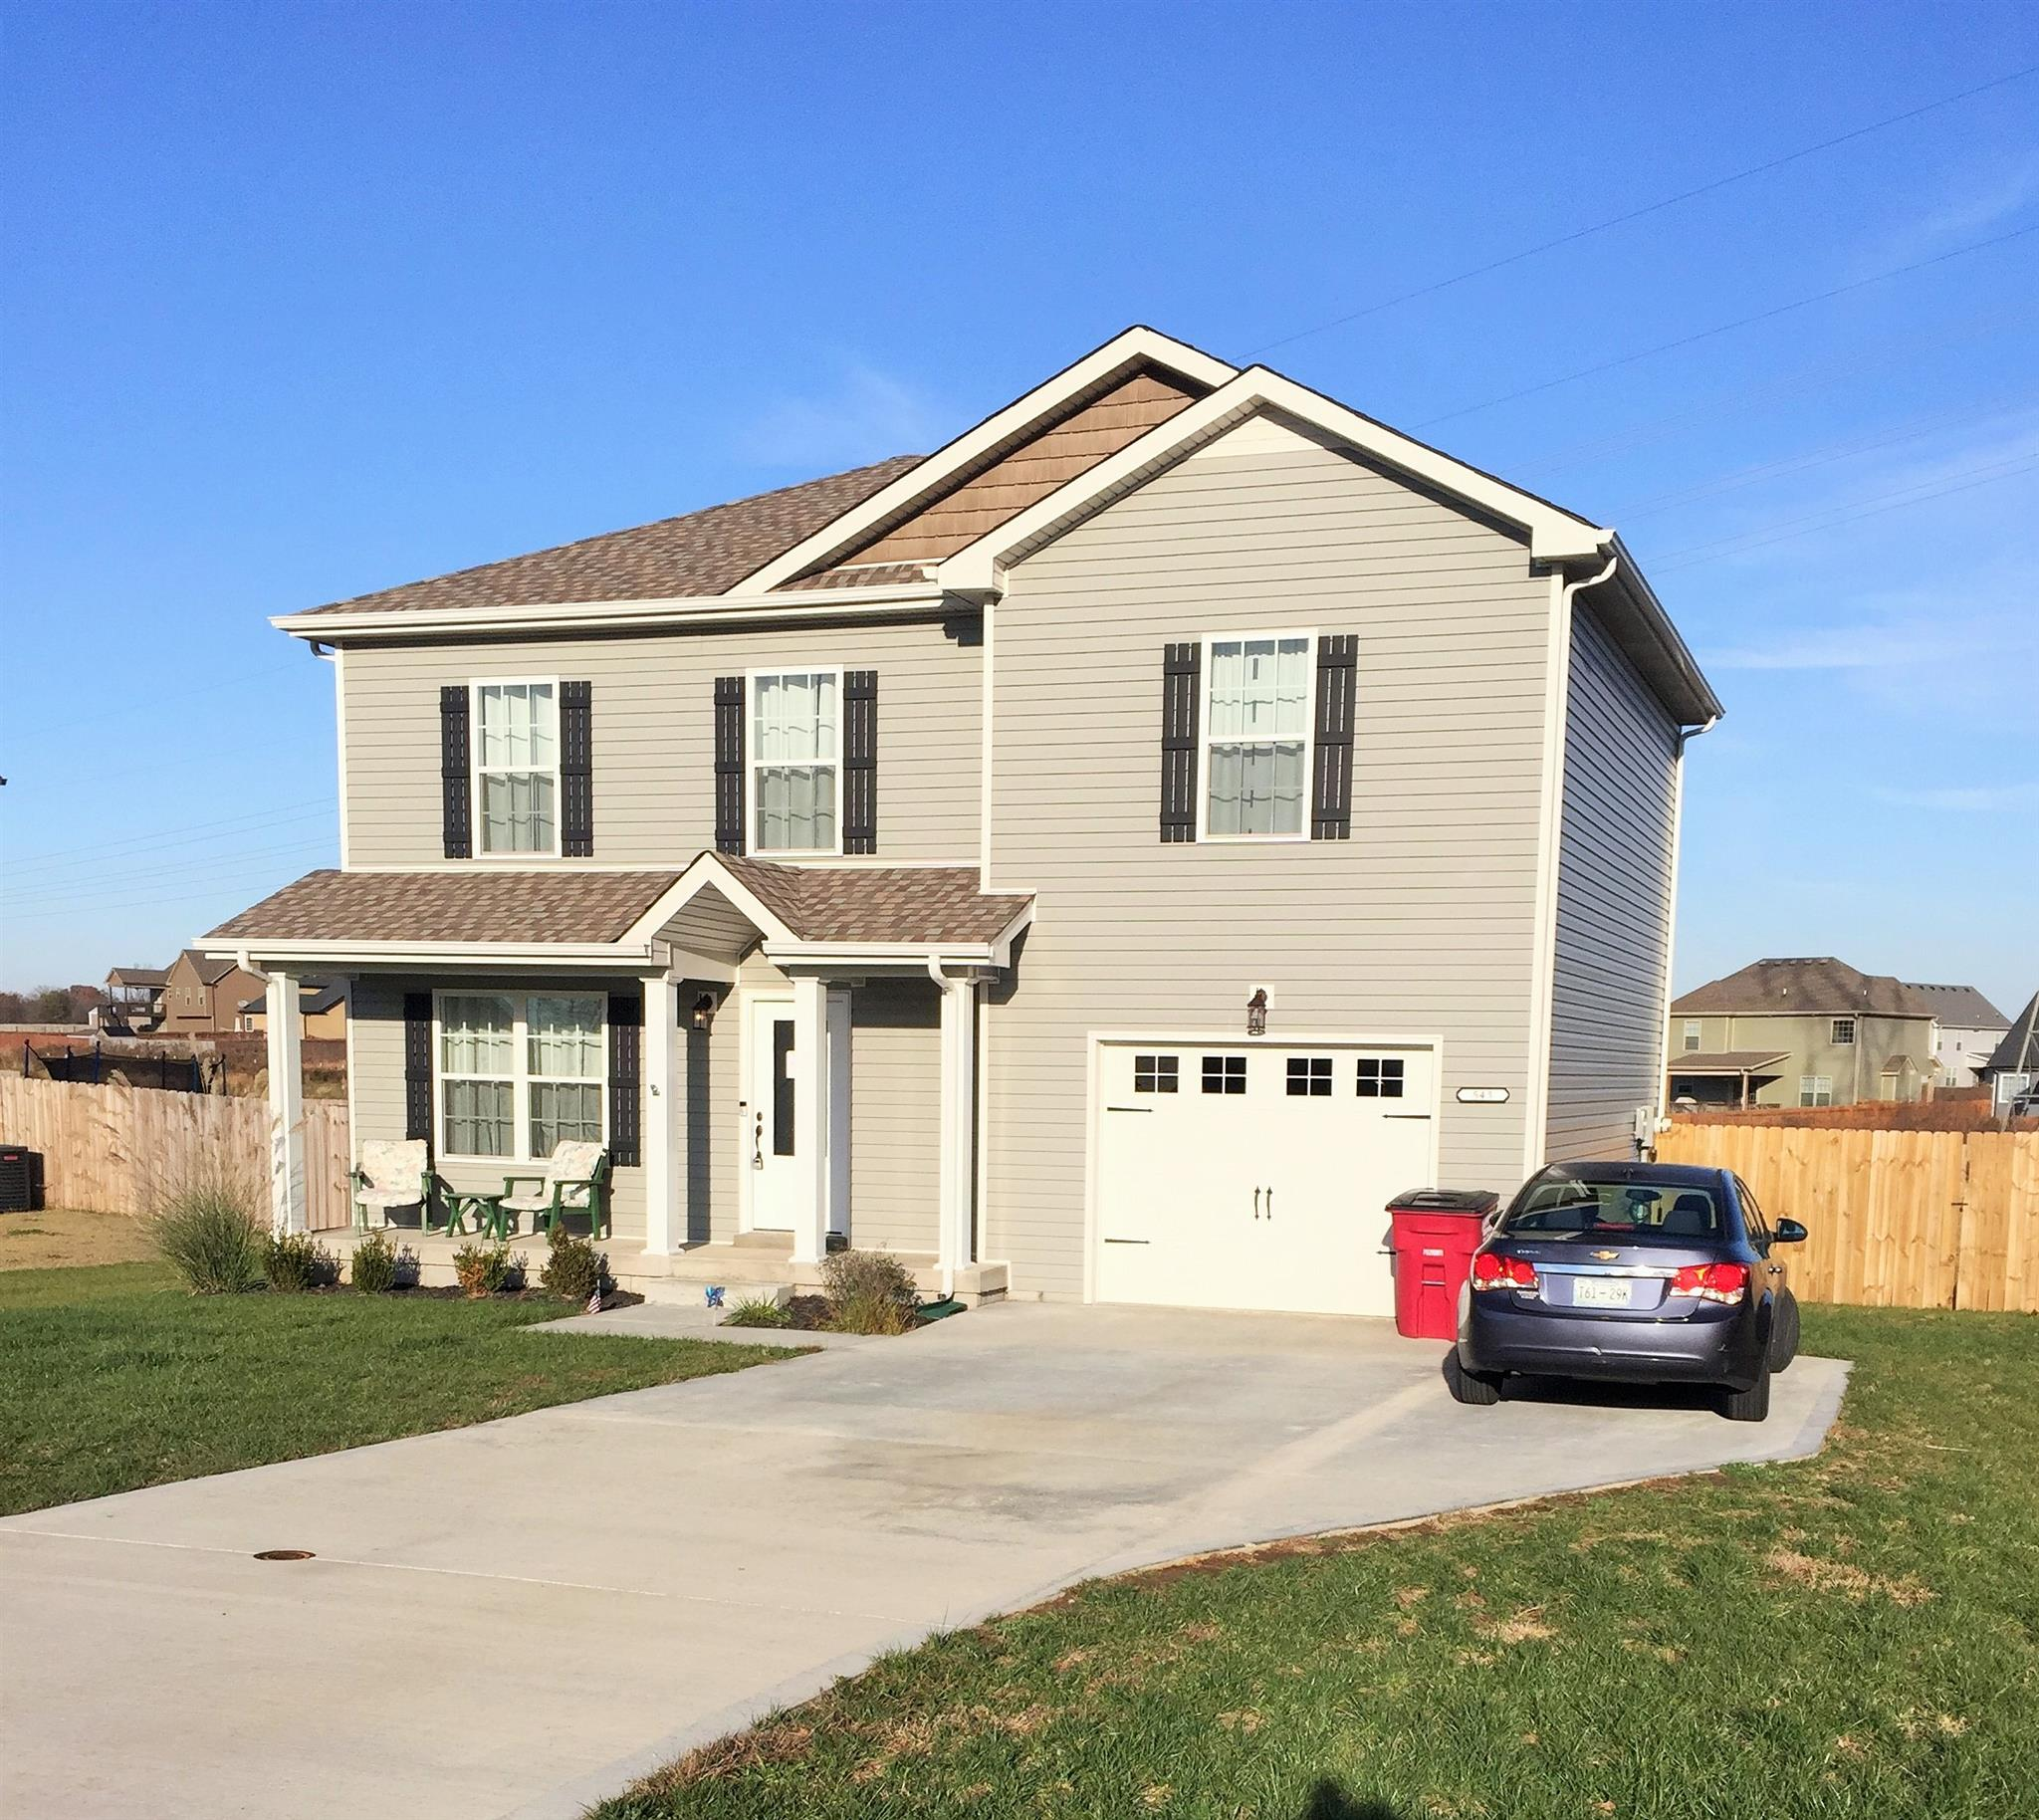 543 Tracy Ln, Fort Campbell, Tennessee